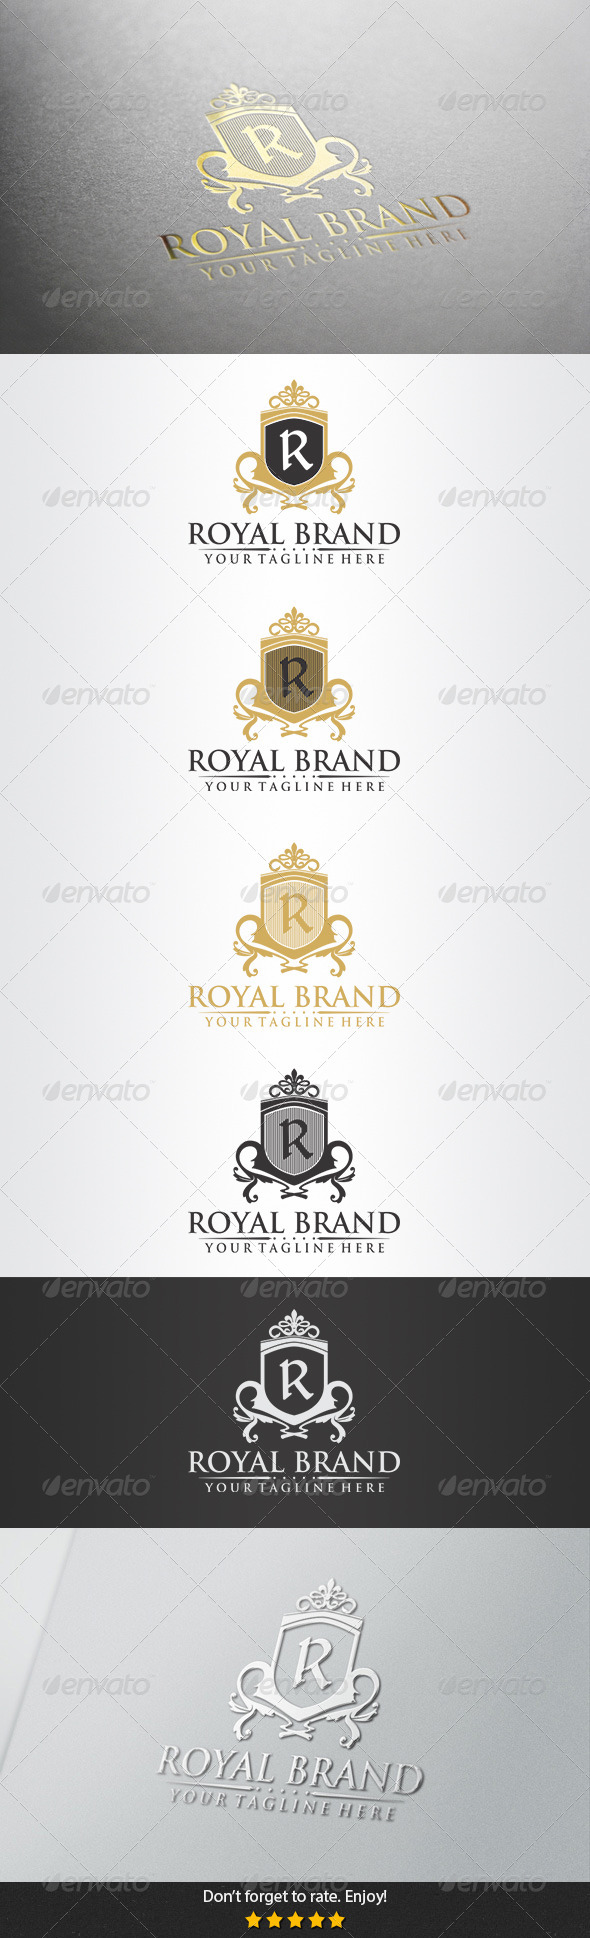 Royal Brand Logo - Crests Logo Templates